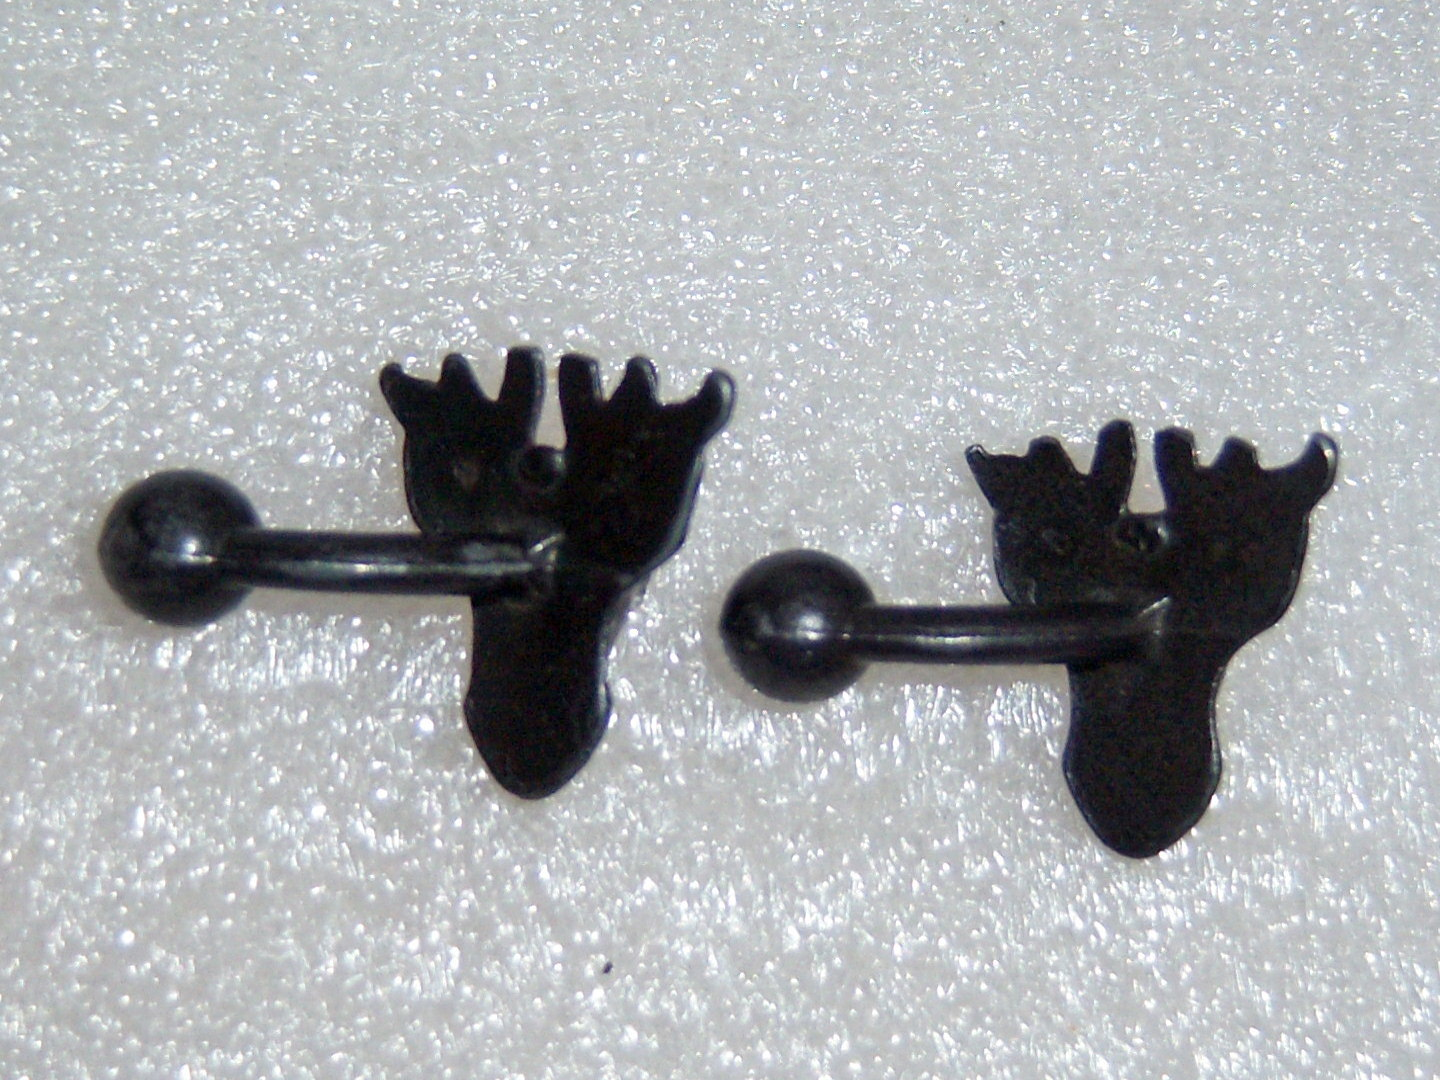 Antique Black Deer Stag Elk Cuff Links. Deer Elk Stag Hunting Antique Cufflinks.